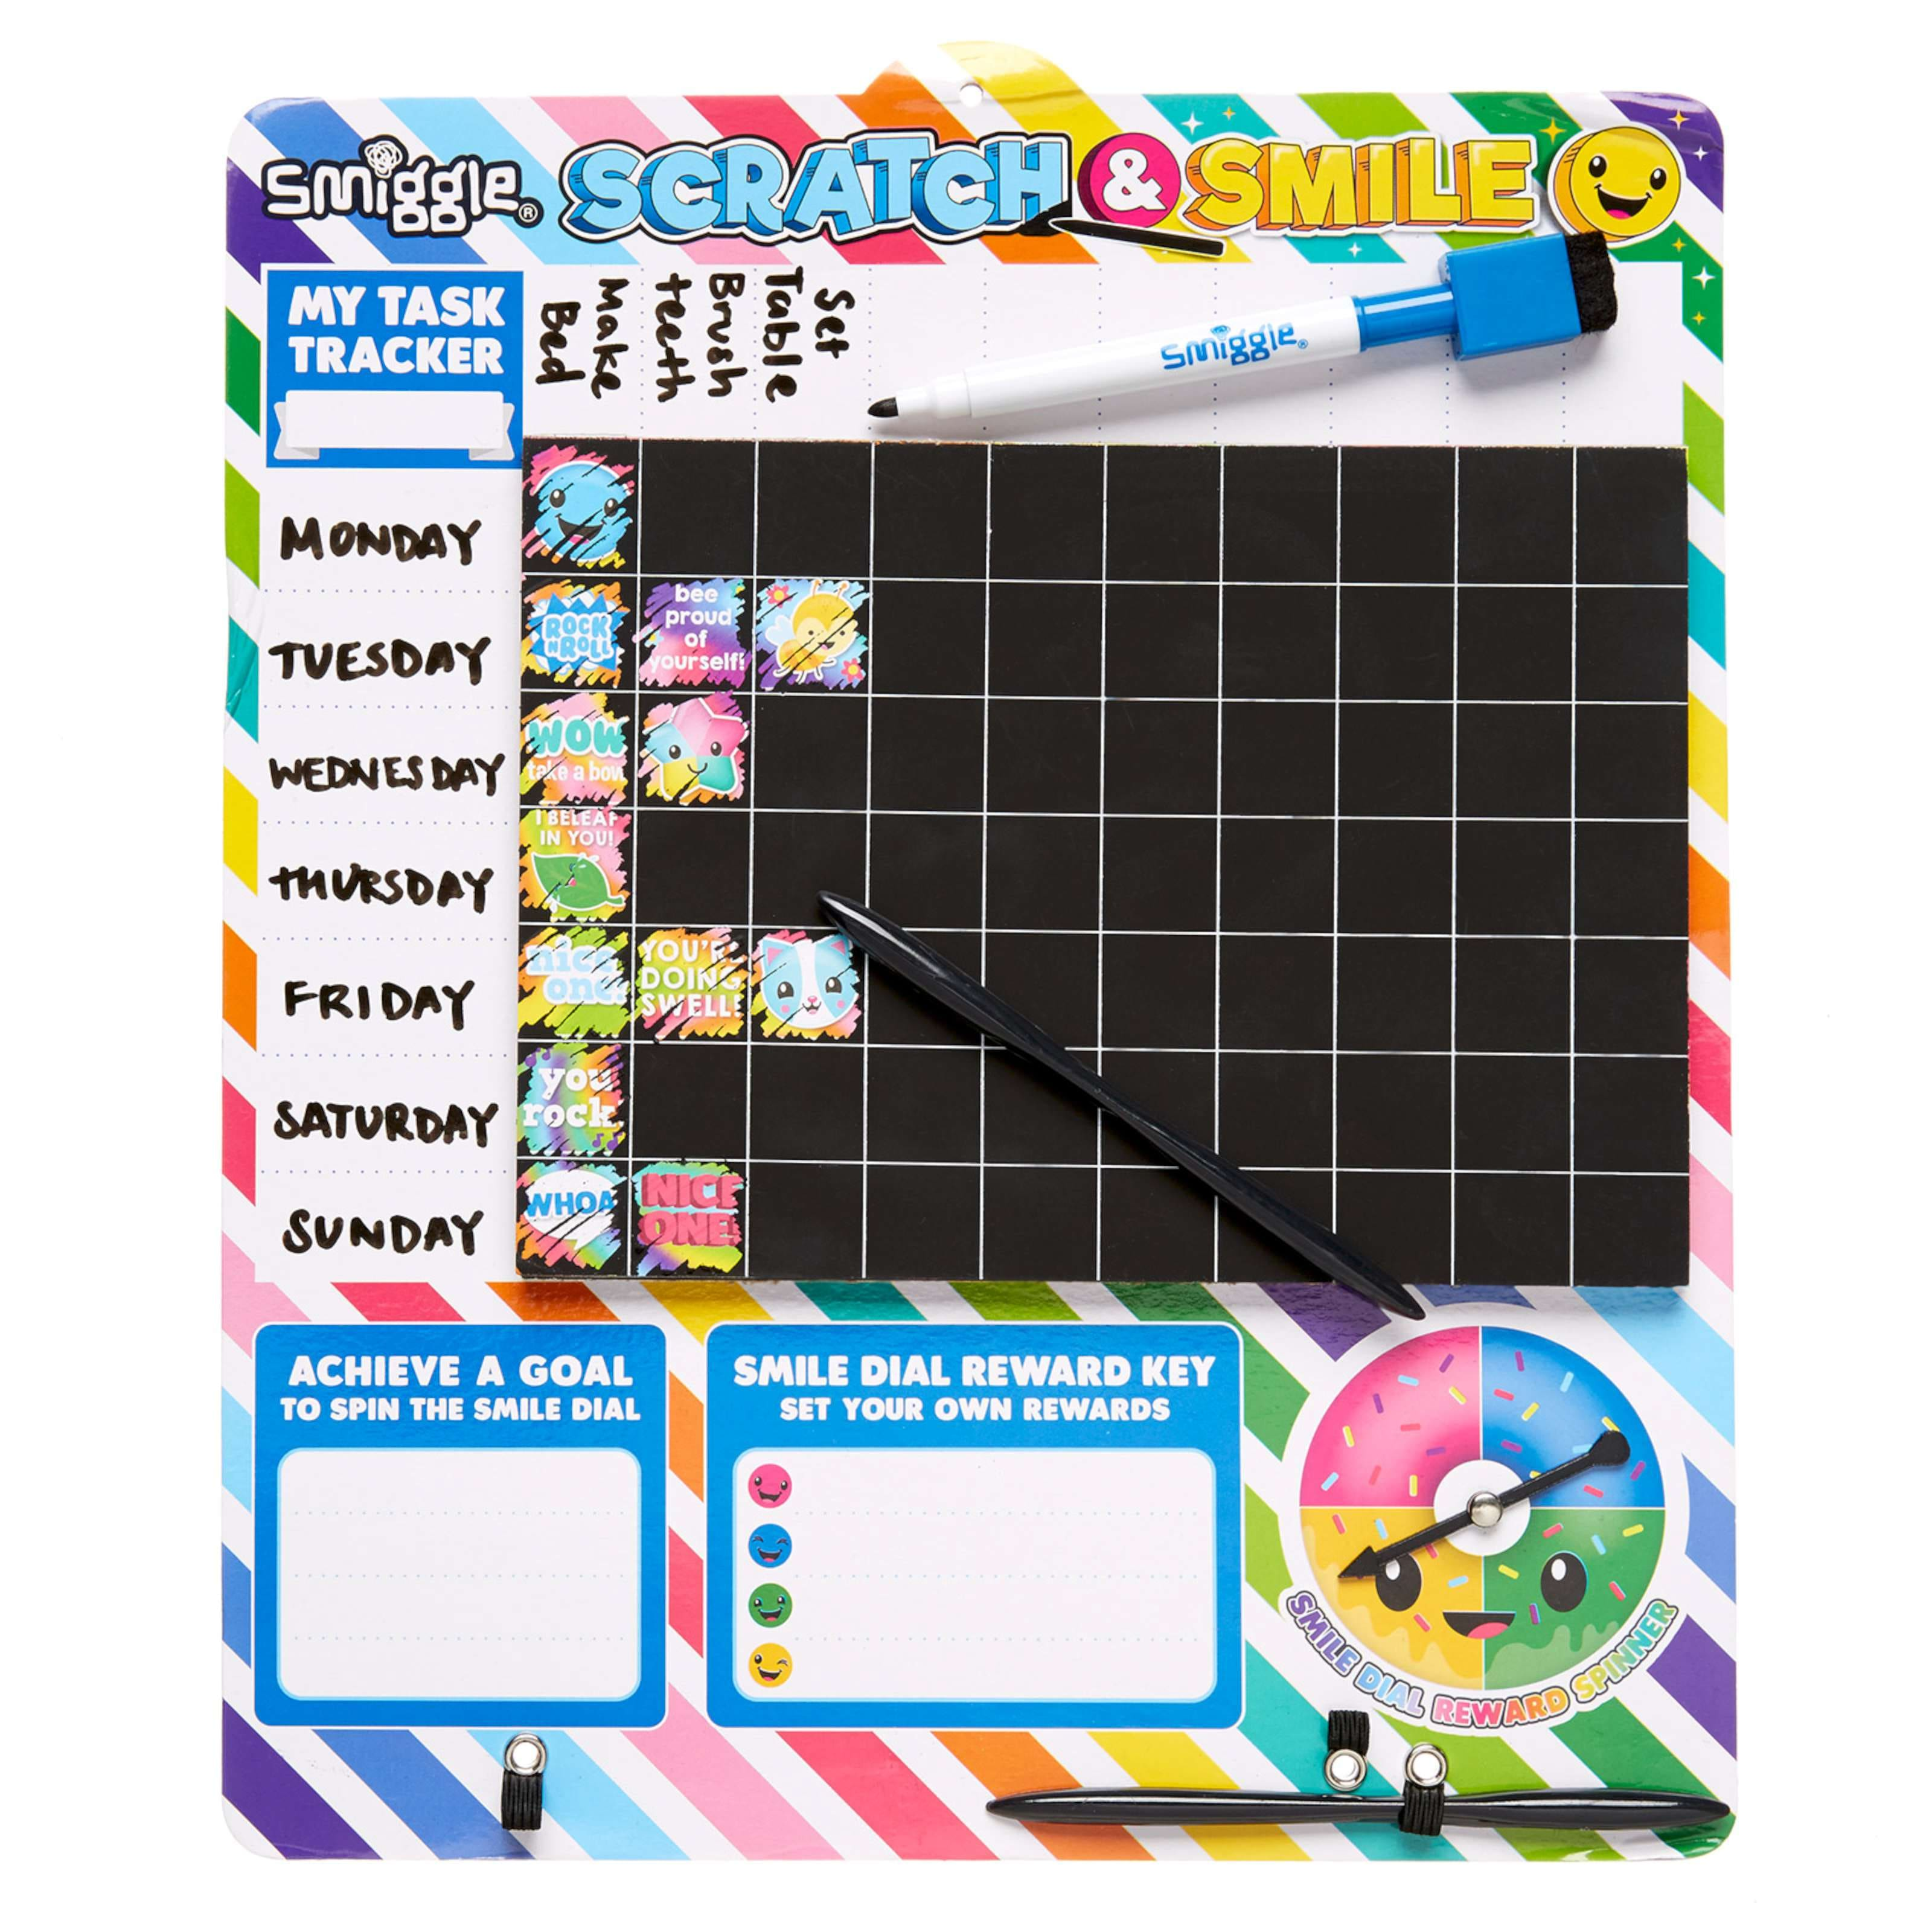 image for scratch reward chart from smiggle